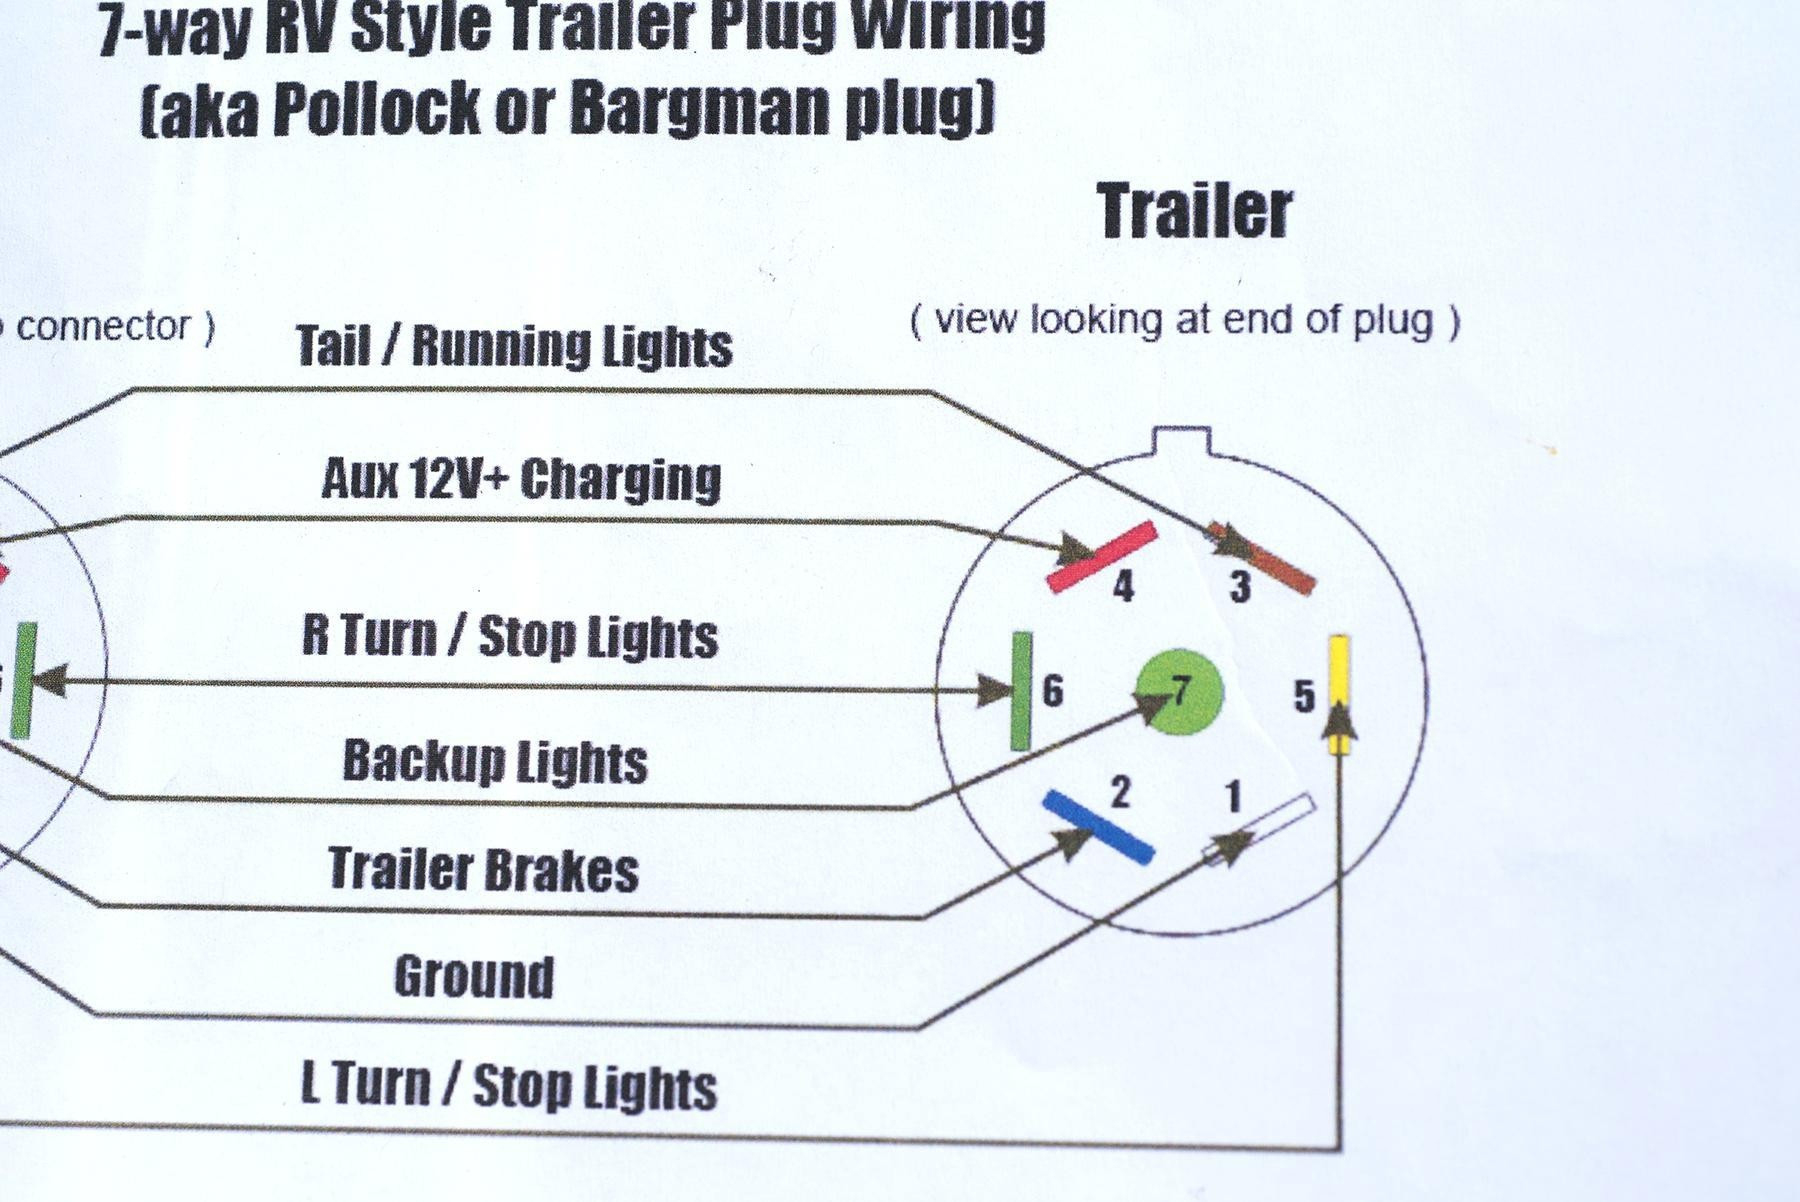 7 Rv Plug Wiring Diagram For Towing - Wiring Diagram Write  Way Connector Wiring Harness on 2011 chevy van trailer wire harness, 7 way coil, 7 way valve, 7 way relay harness, 7 way cable, 7 way radio, 7 way switch, 7 way connector,